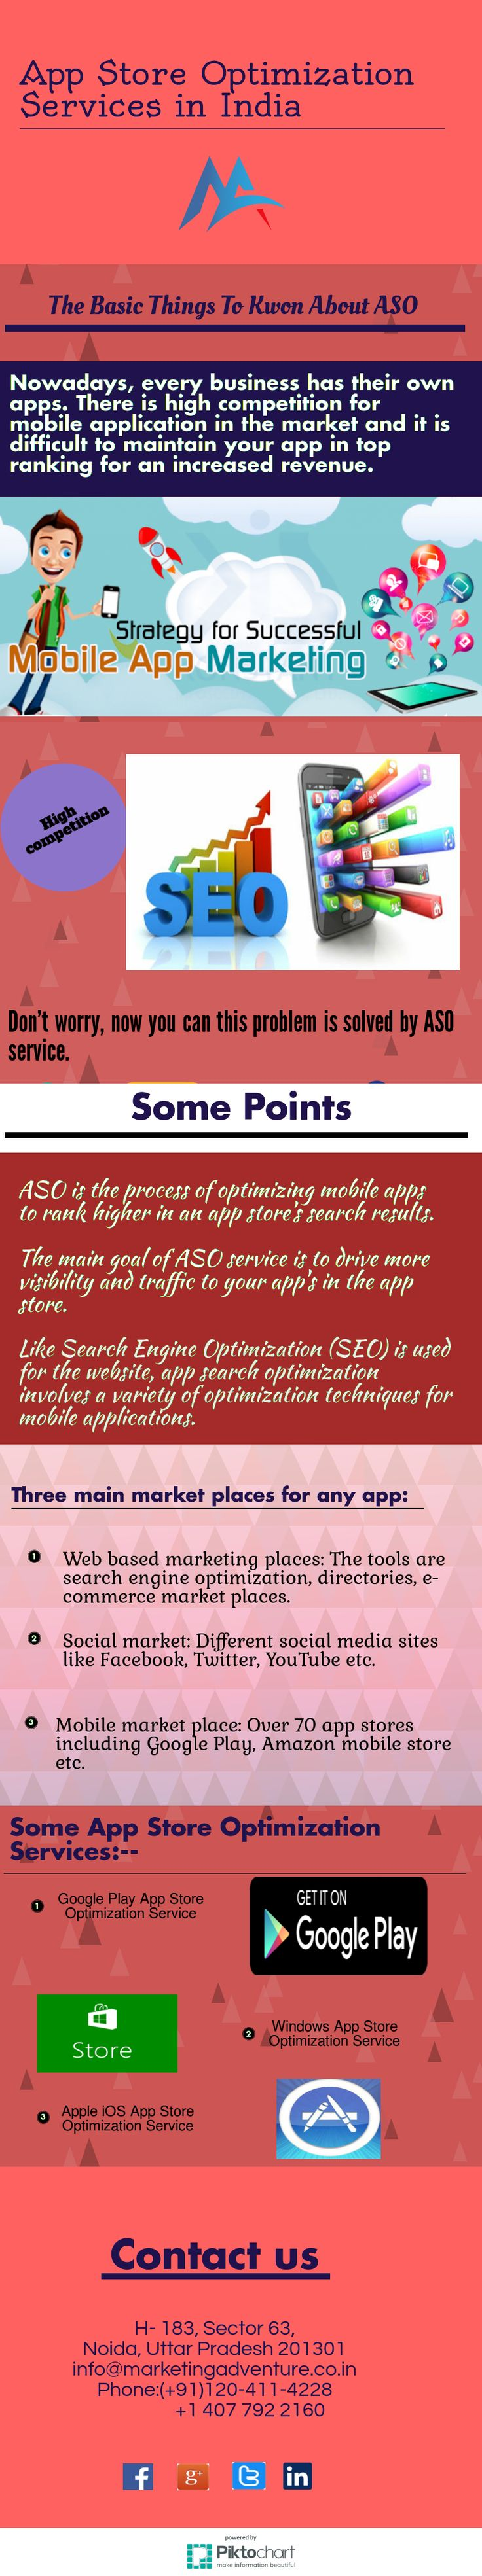 Today we have a new business opportunity in ASO, which is used for optimizing mobile apps to rank higher in an app store's search results.